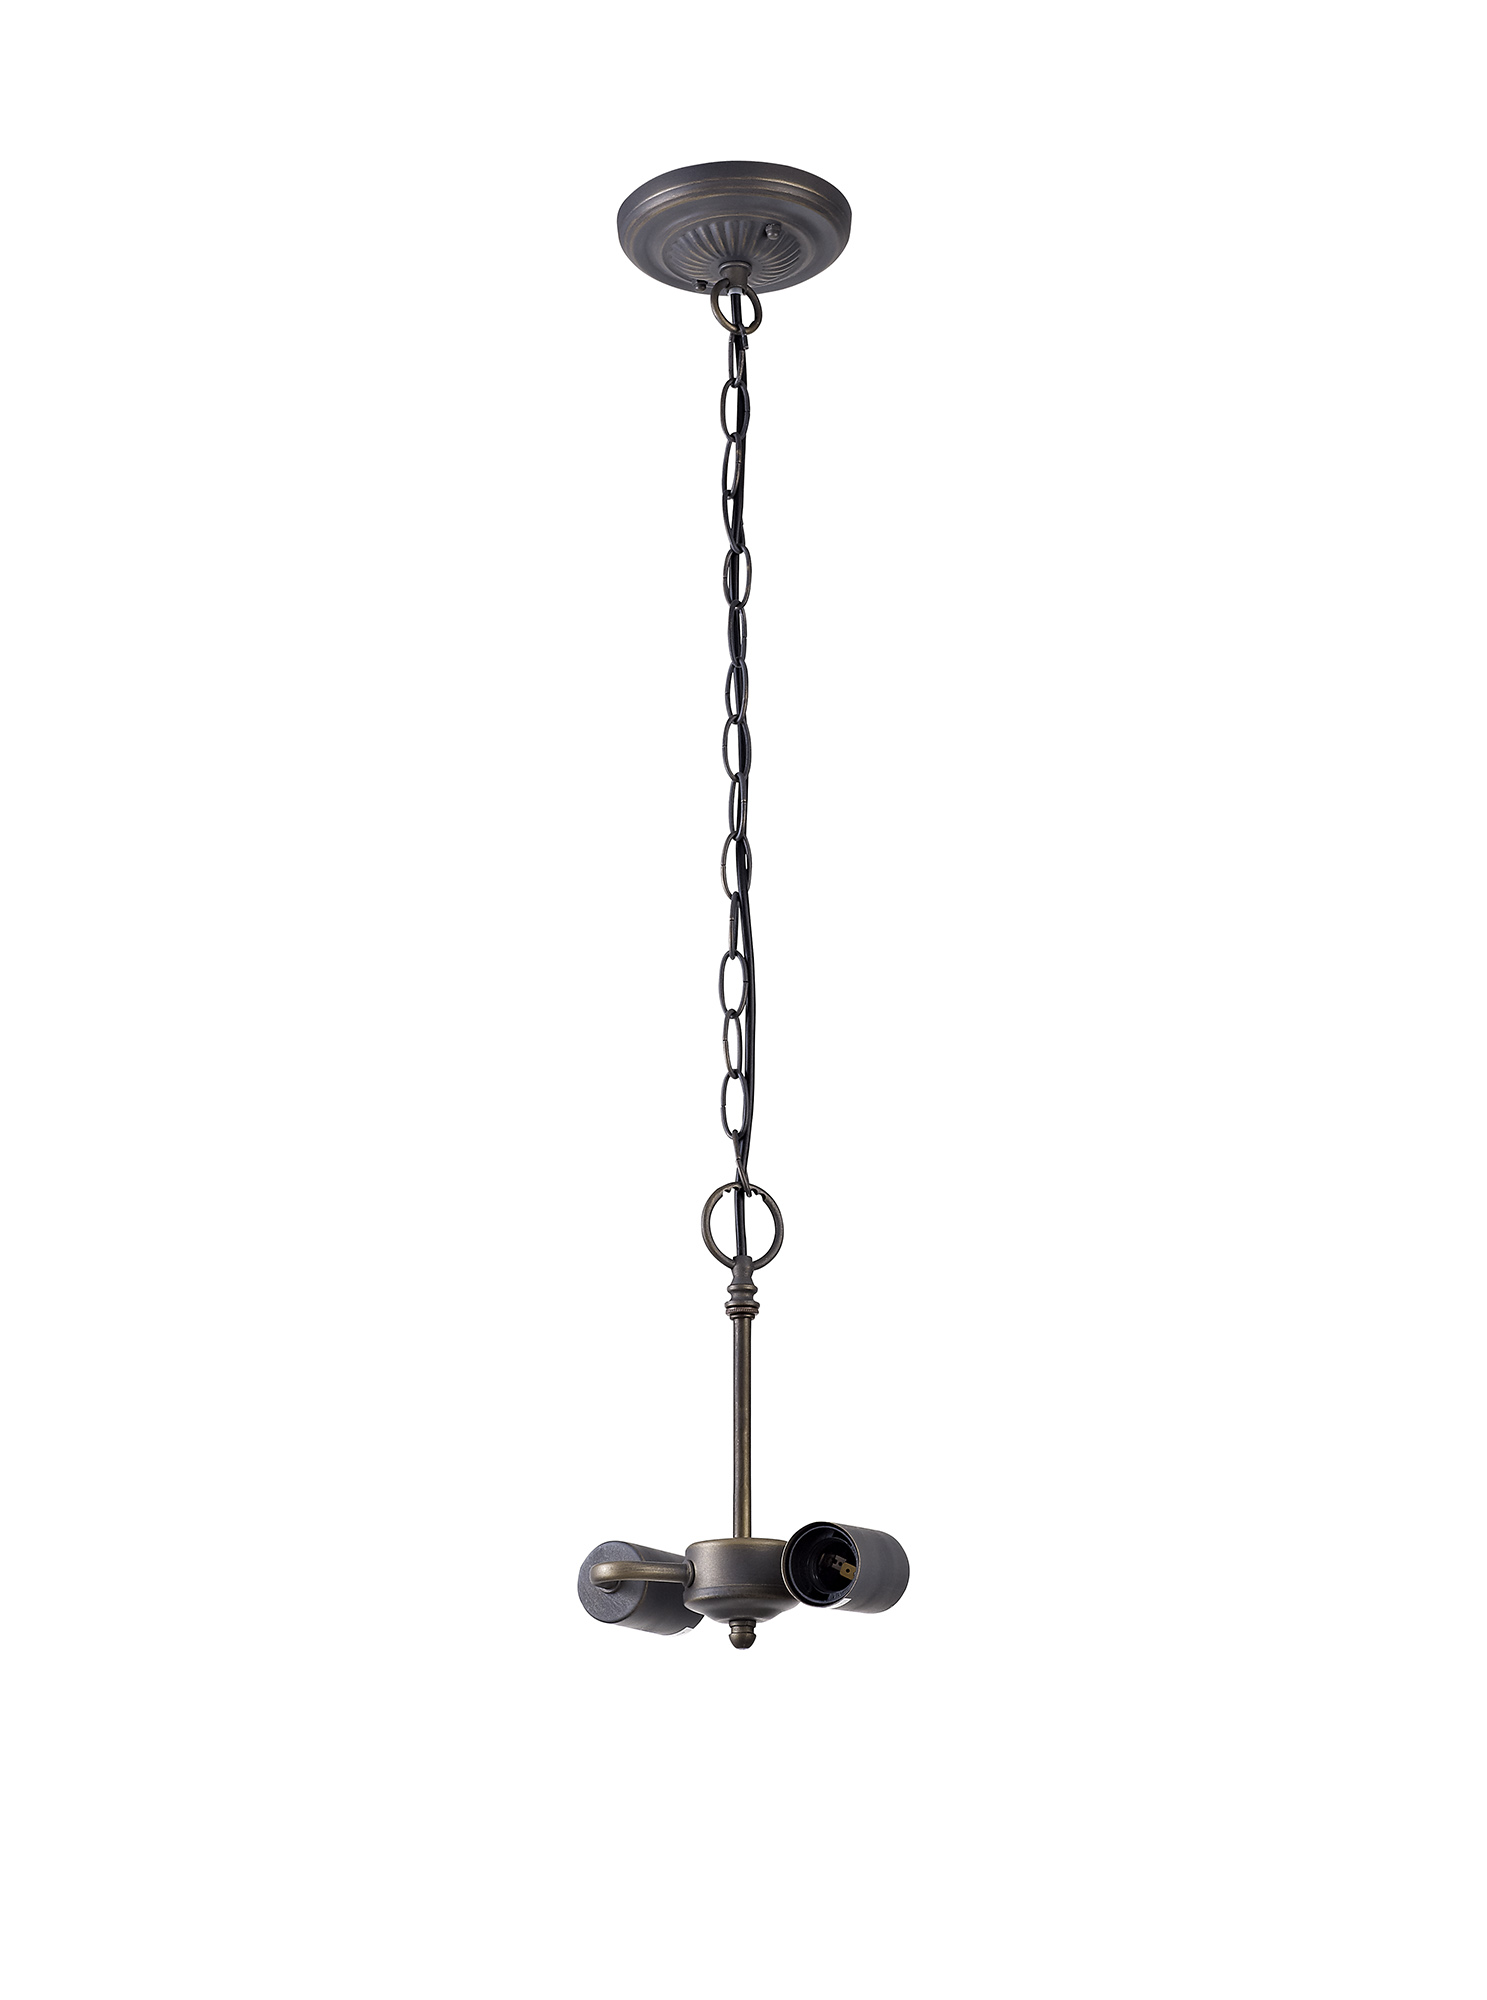 2 Light Downlighter Pendant E27 With 30cm Tiffany Shade, White/Grey/Black/Clear Crystal/Aged Antique Brass